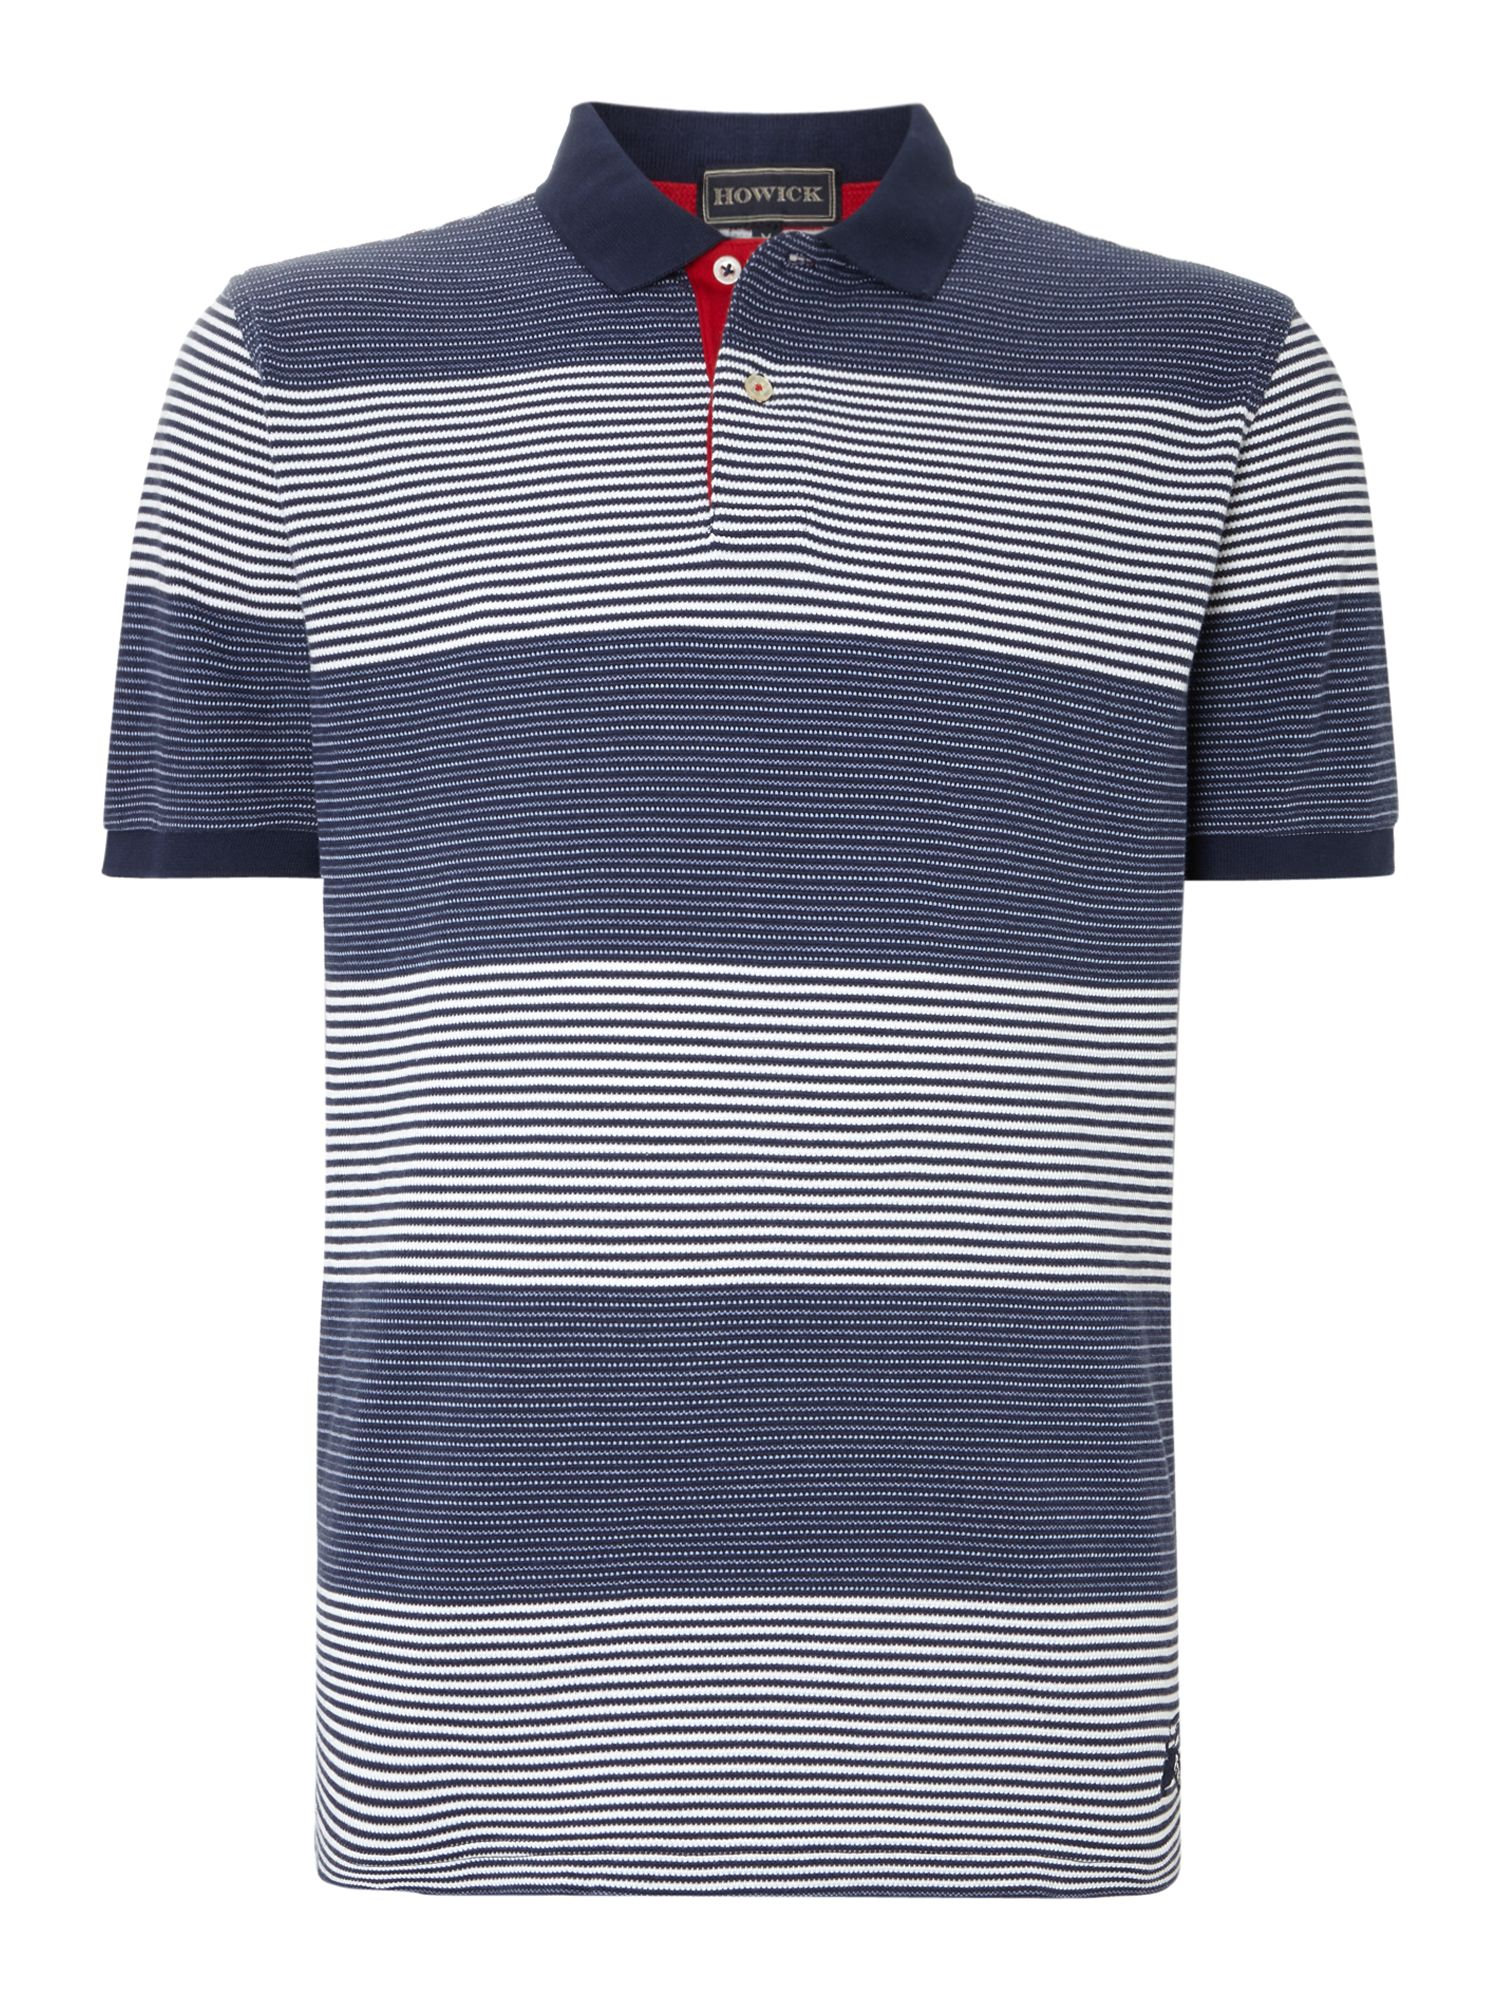 Horseforth Pique Stripe Jersey